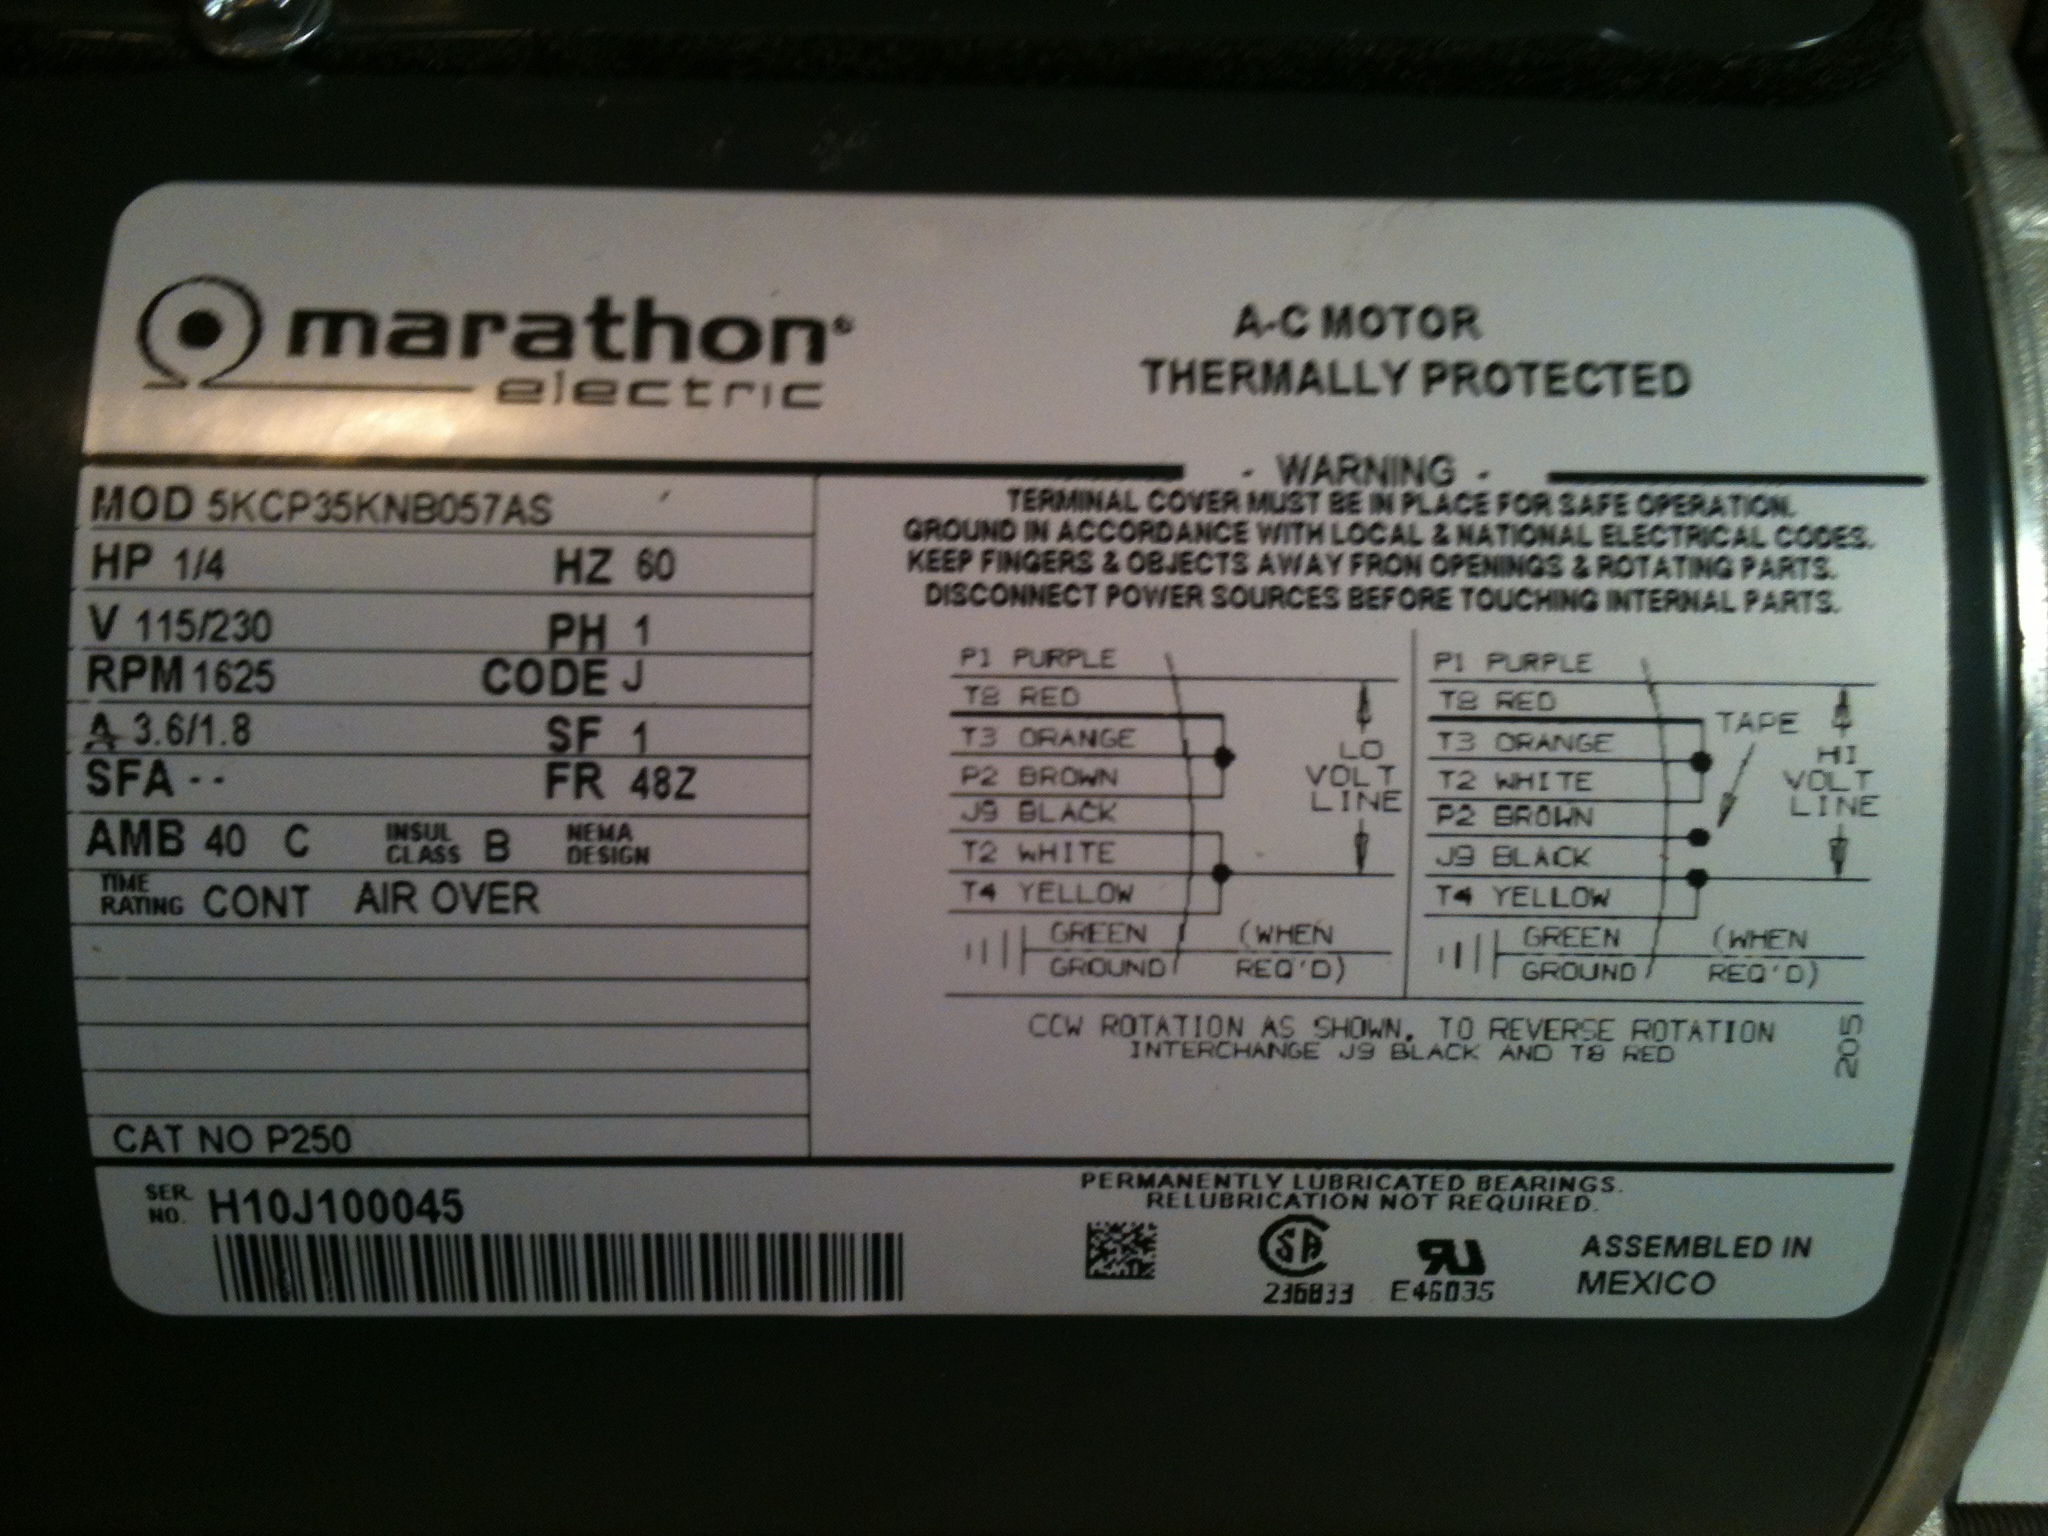 2012 01 24_021217_marathonmotor marathon motor wiring diagram marathon electric wiring diagram Small 120 Volt AC Motor at aneh.co